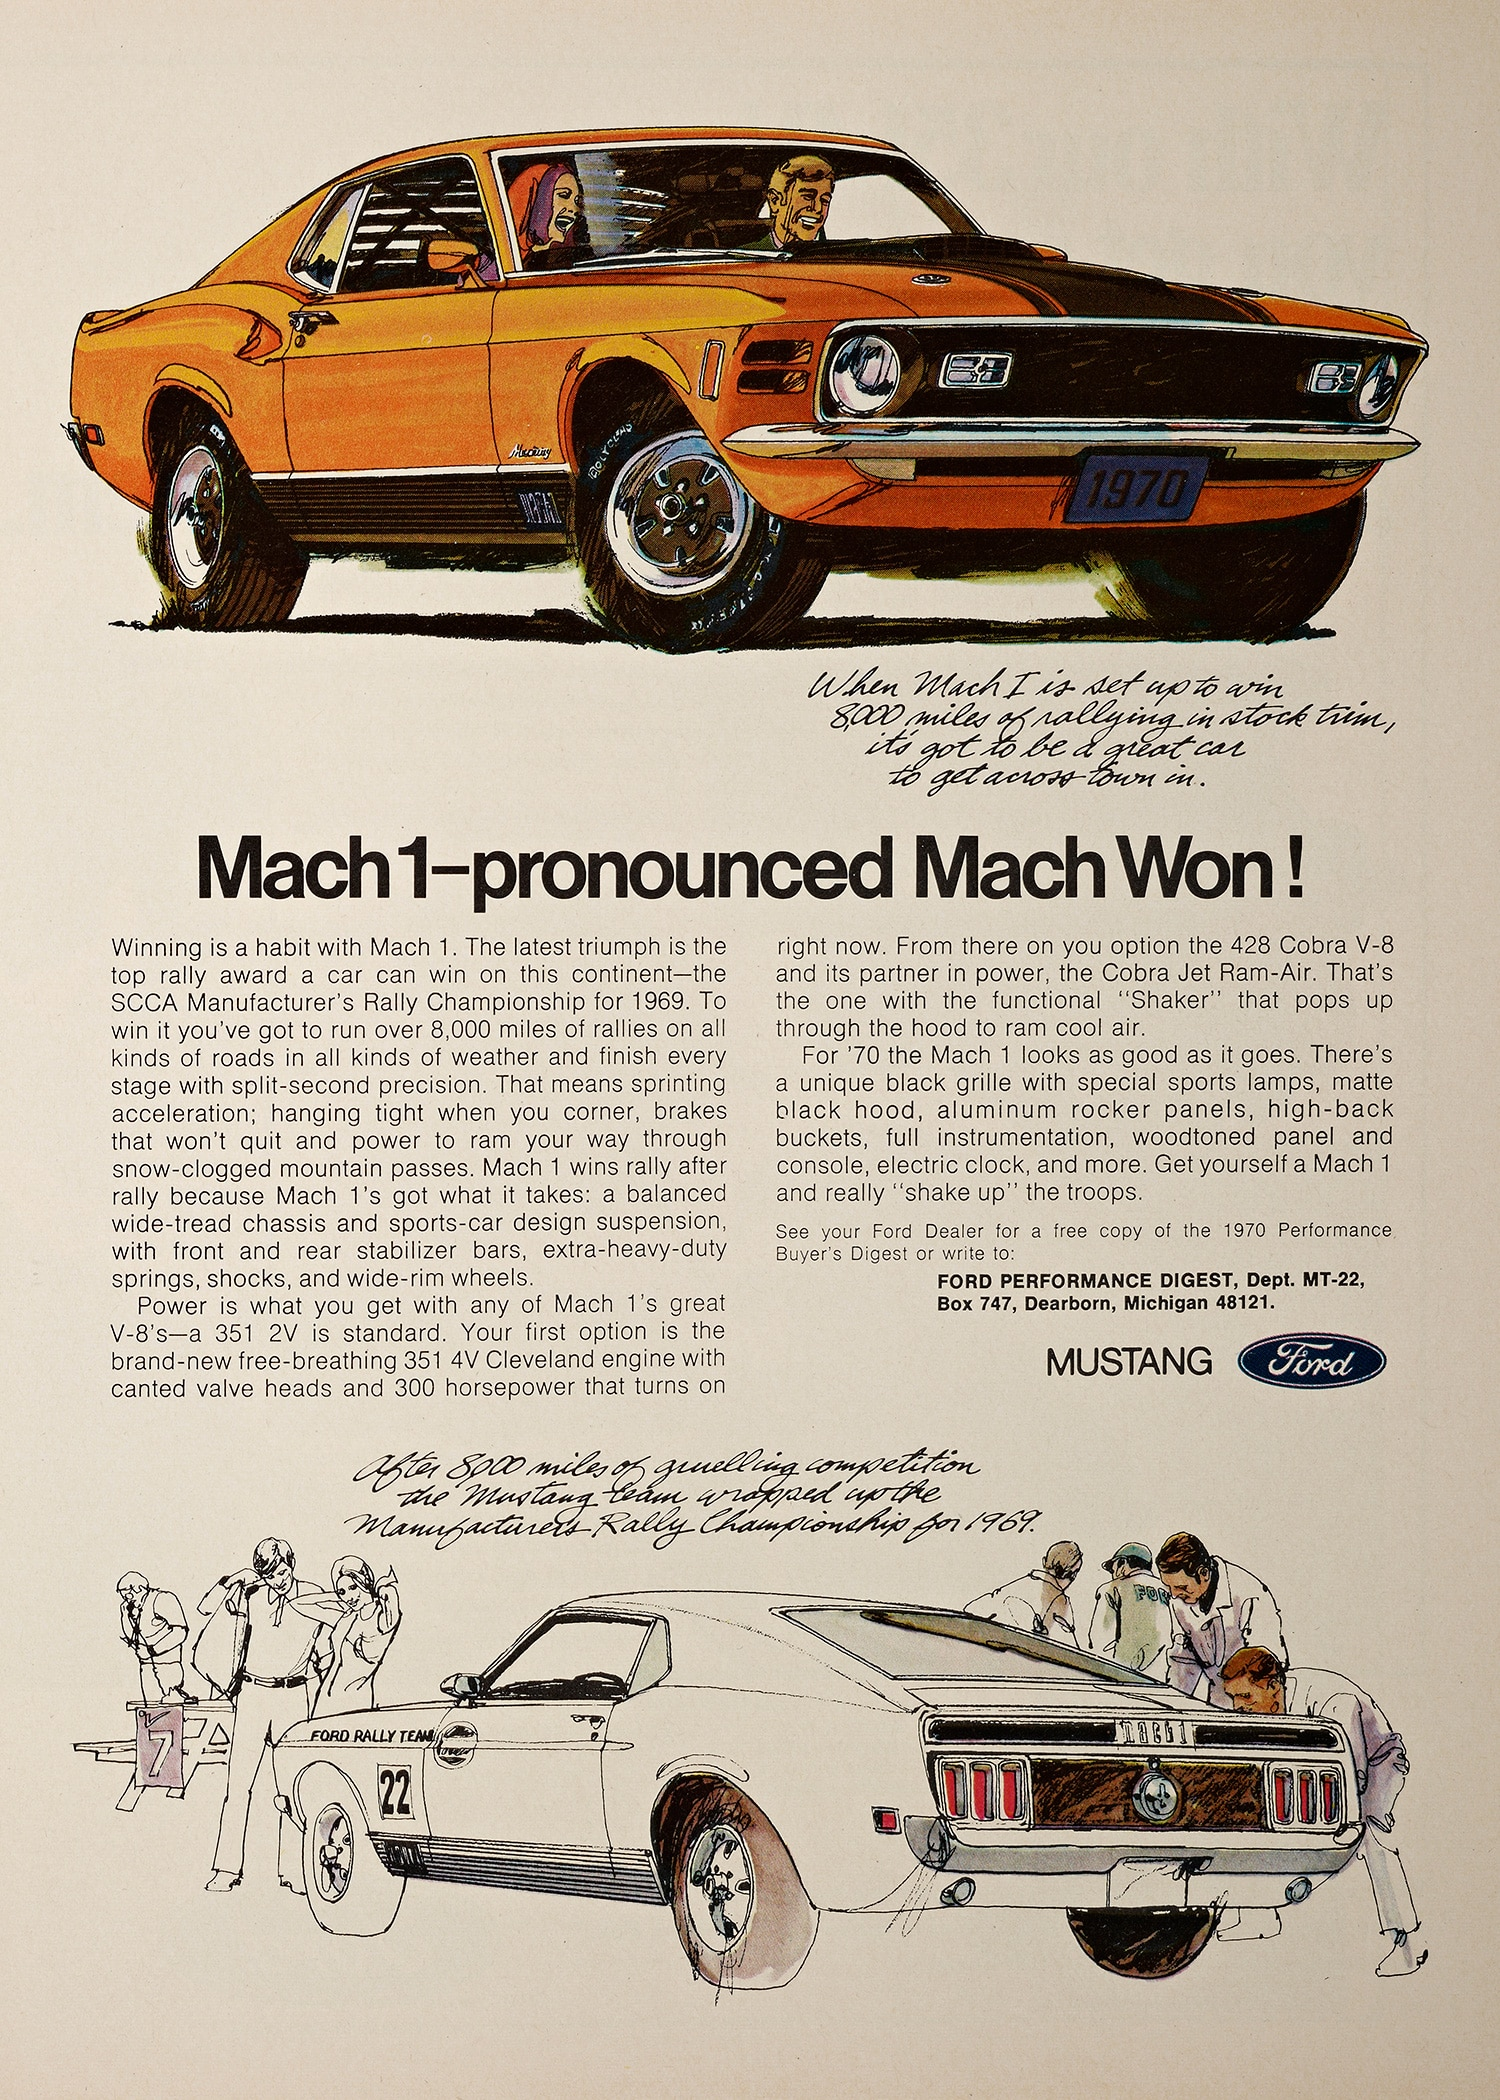 1 1970 Ford Mustang Mach 1 Advertisement